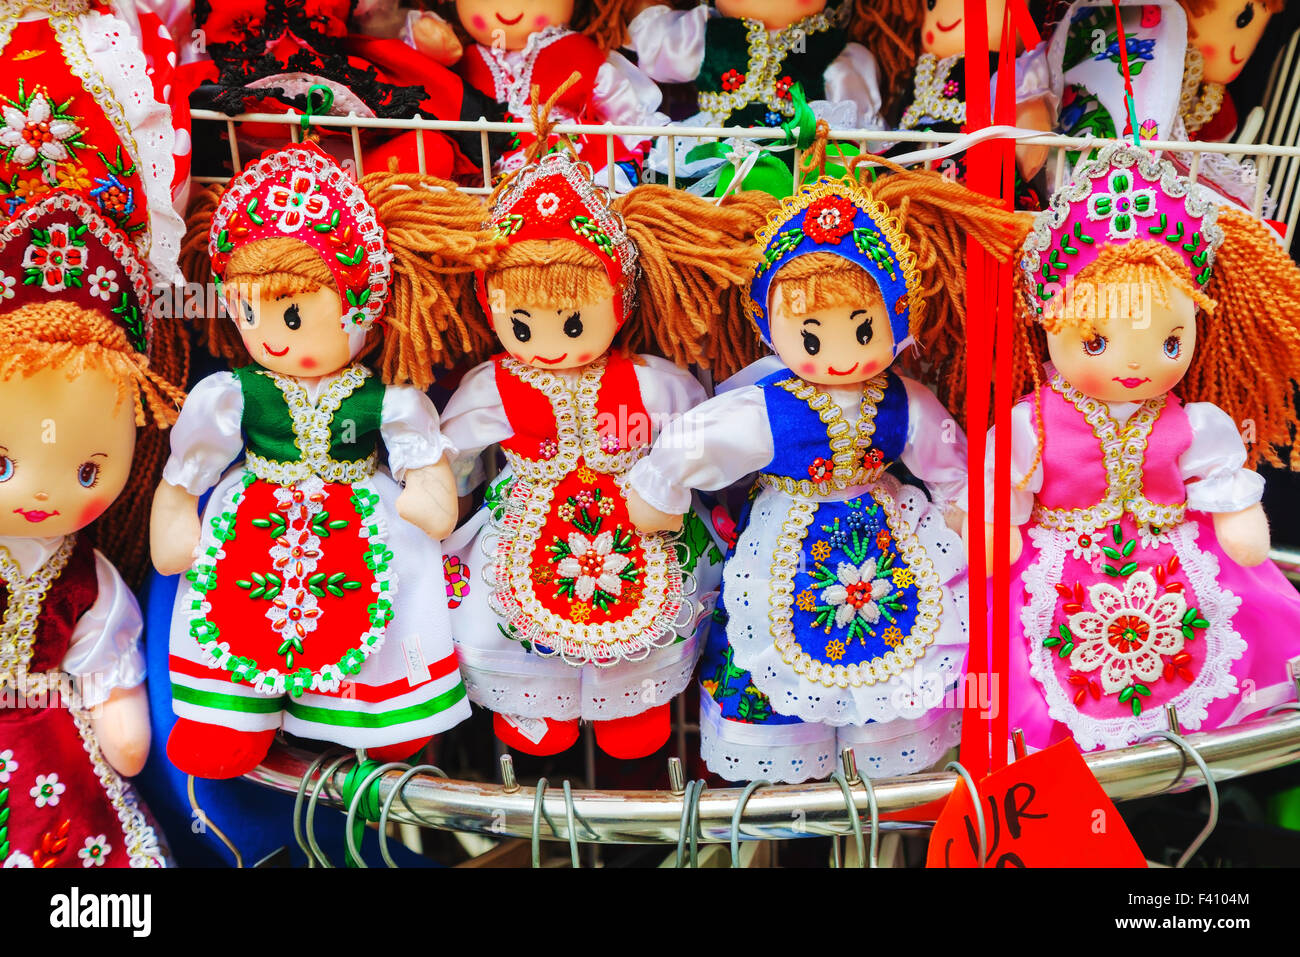 Traditional magyar dolls - Stock Image